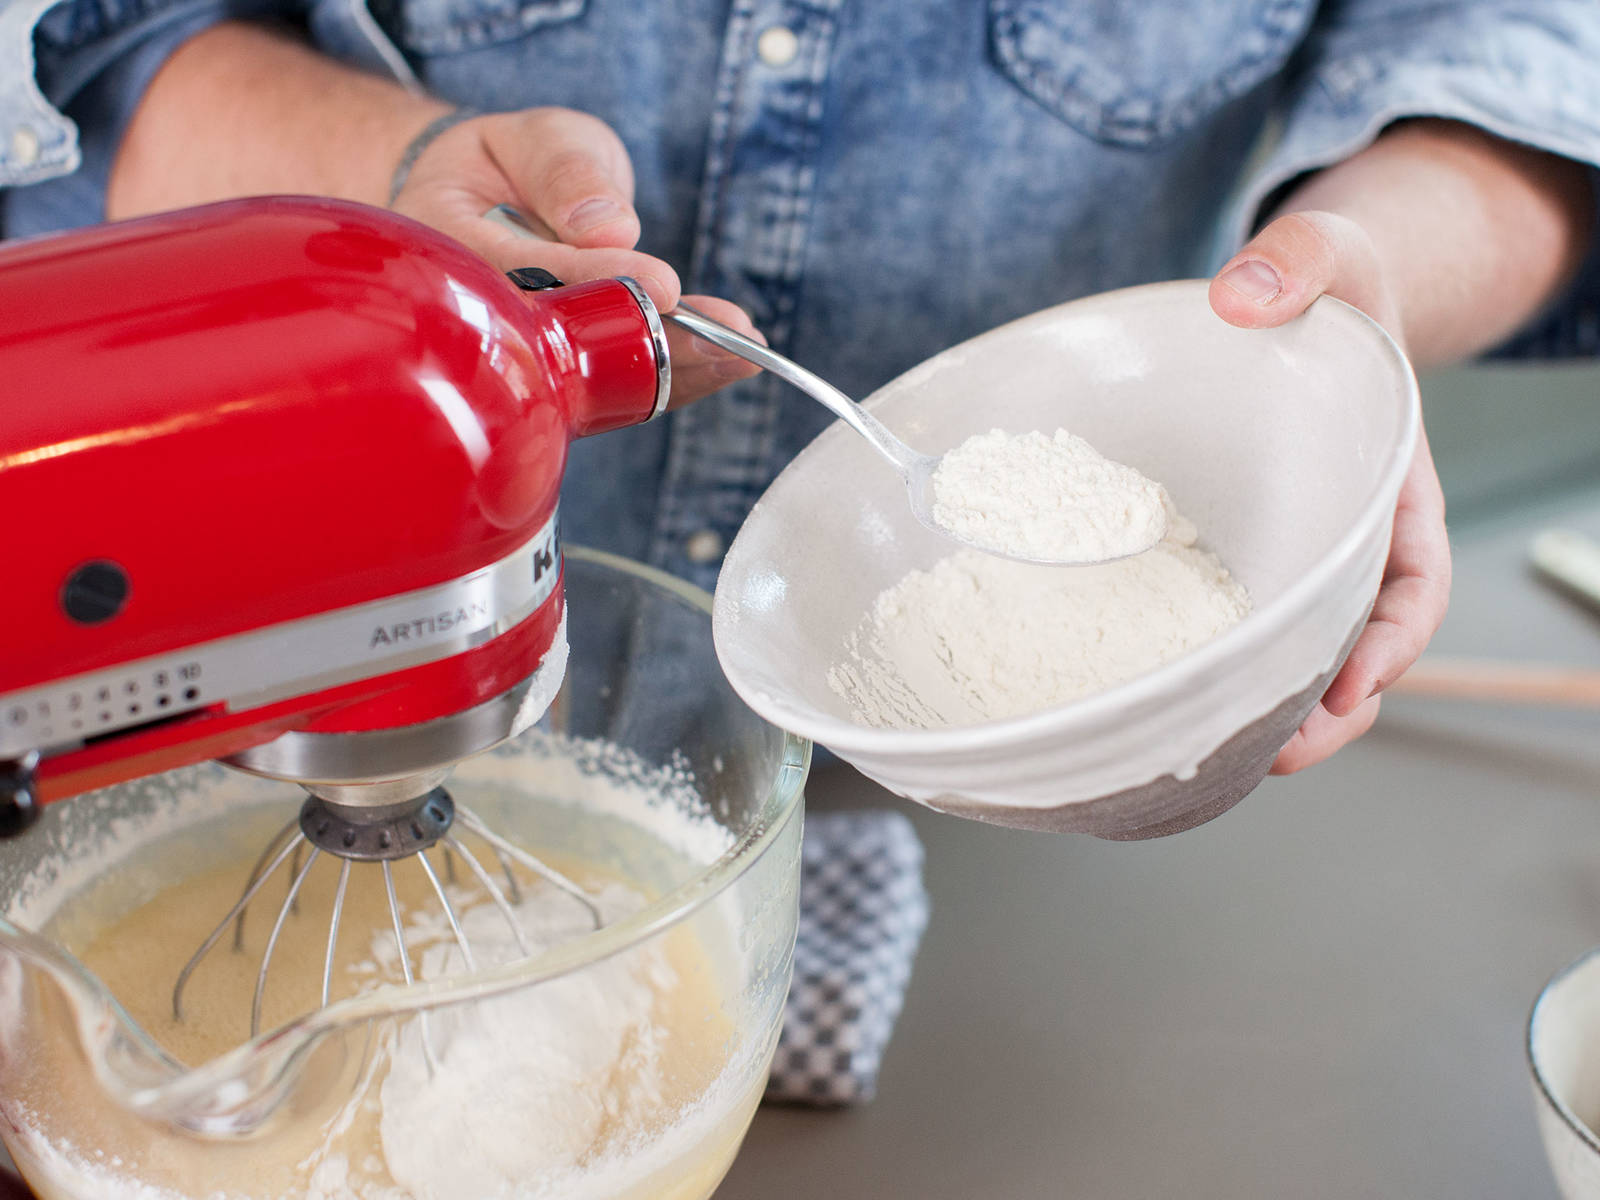 Melt butter in a small saucepan. Add molten butter and sugar to a stand mixer and beat approx. 2 – 3 min. until combined. Add vanilla extract. While mixer is running, add eggs one by one until each is incorporated. Turn mixer down and add flour and milk in portions, only mixing as long as it takes to incorporate them.